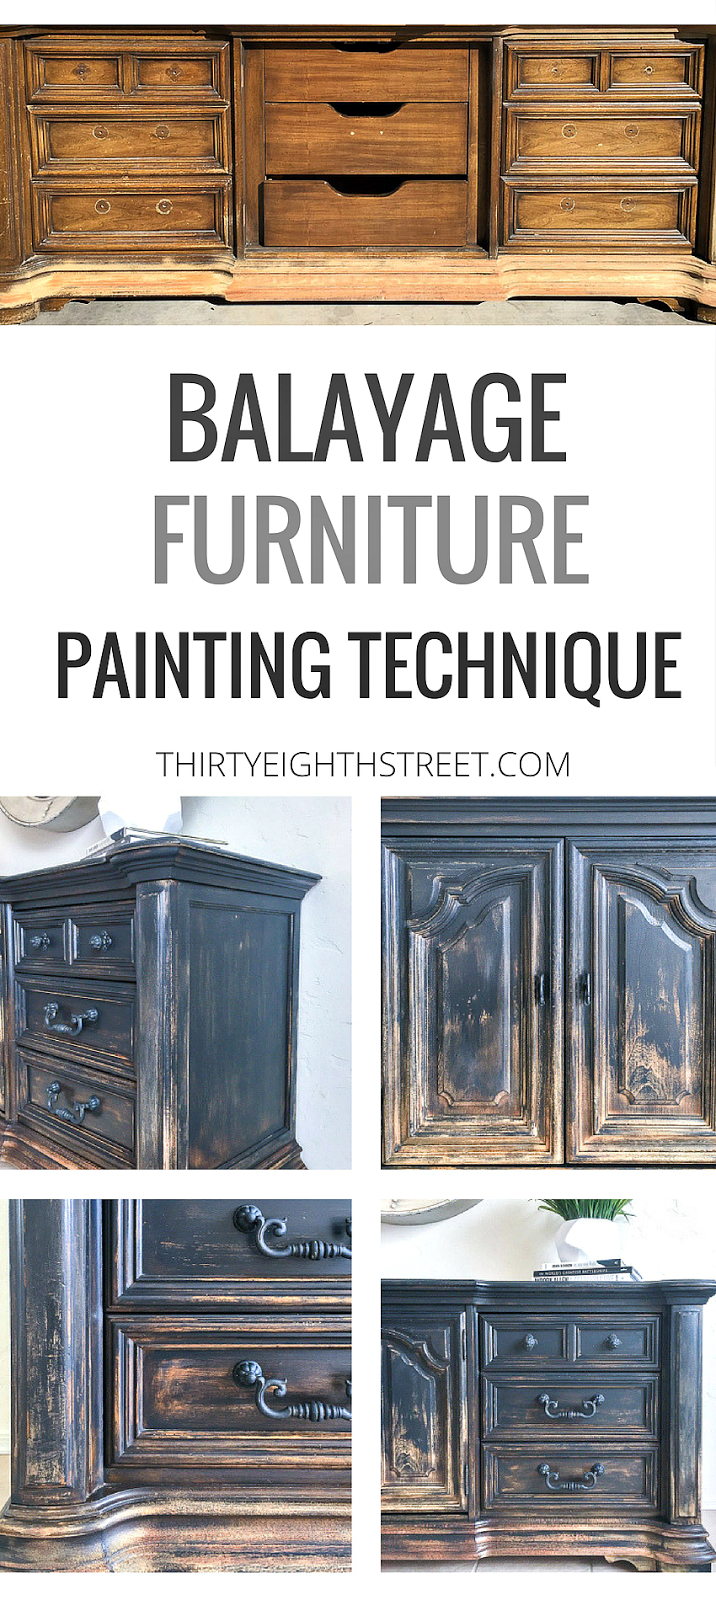 Ombre technique supplies and tips from sherwin williams - Balayage Furniture Painting Technique Learn How To Create A Rustic Burnt Ombre Finish To Your